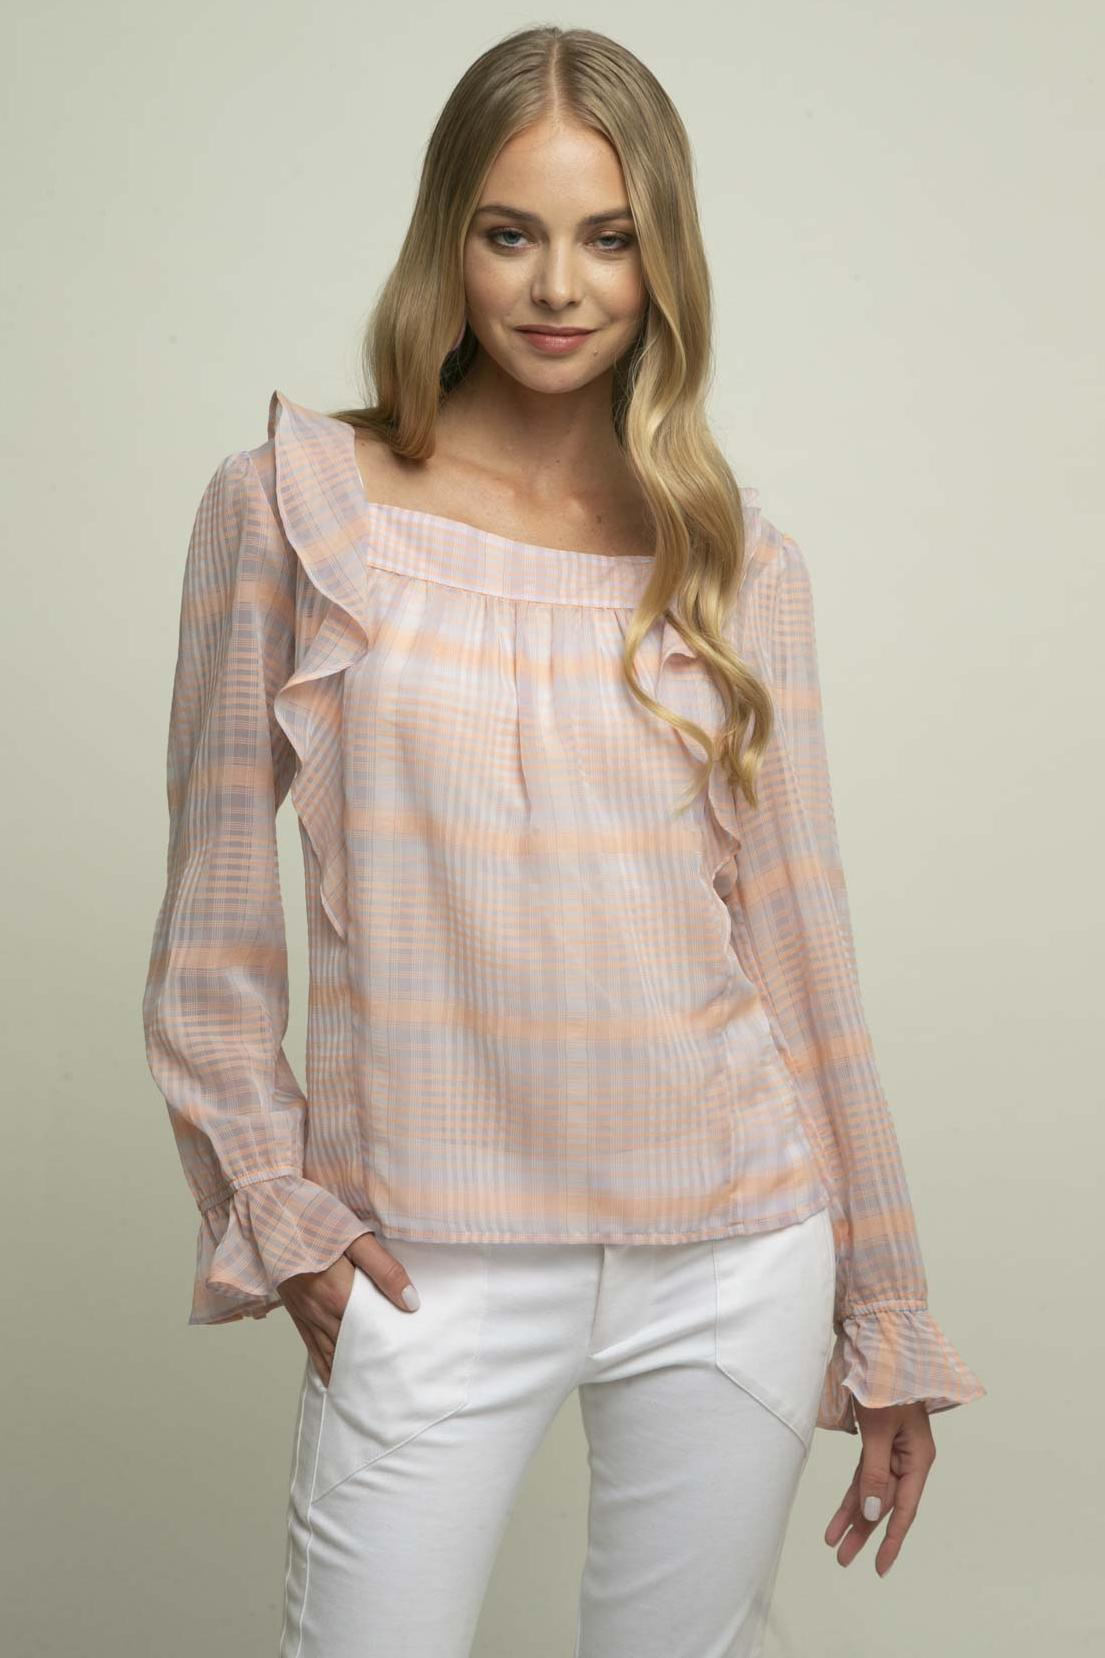 Eva Franco Top Brittany Blouse - Cotton Candy Plaid